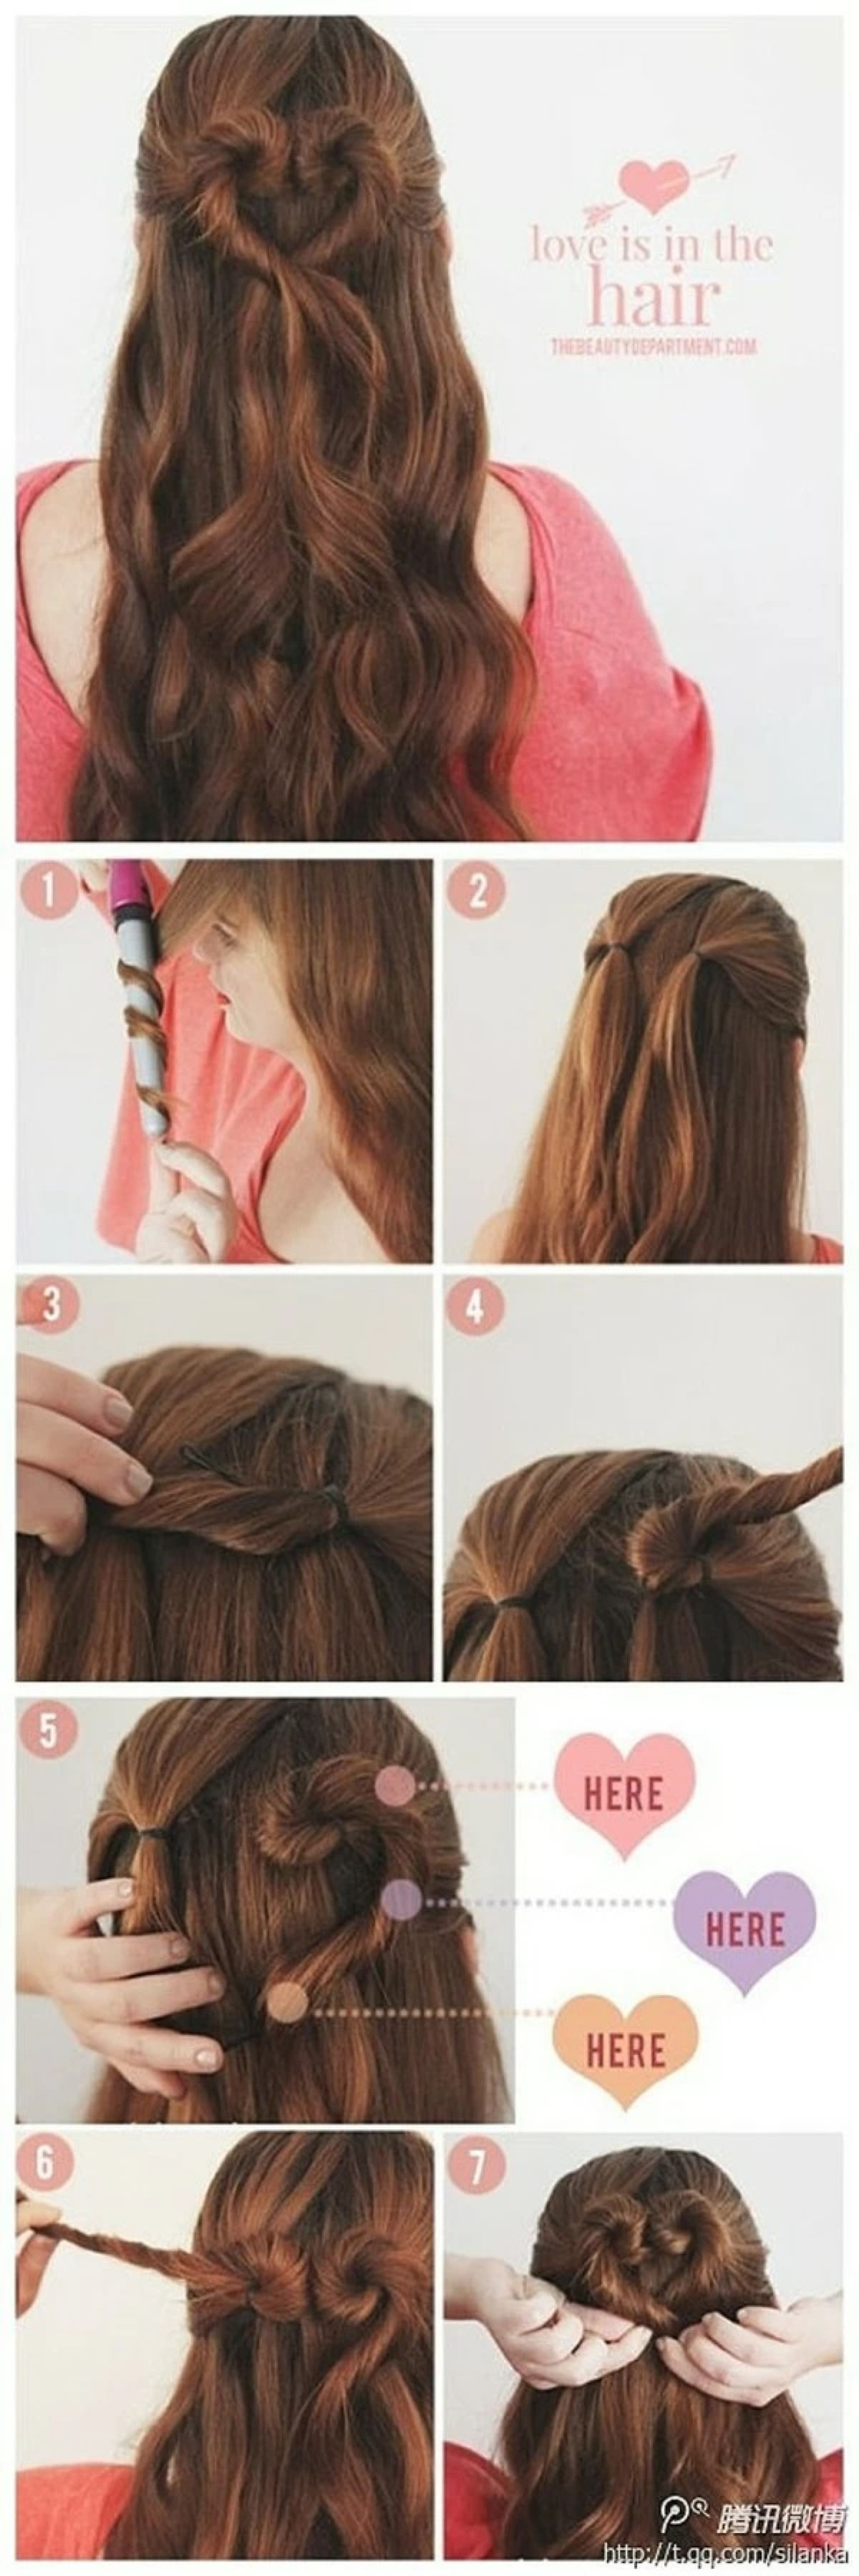 Coeur derrière coiffures pinterest heart shapes curly and